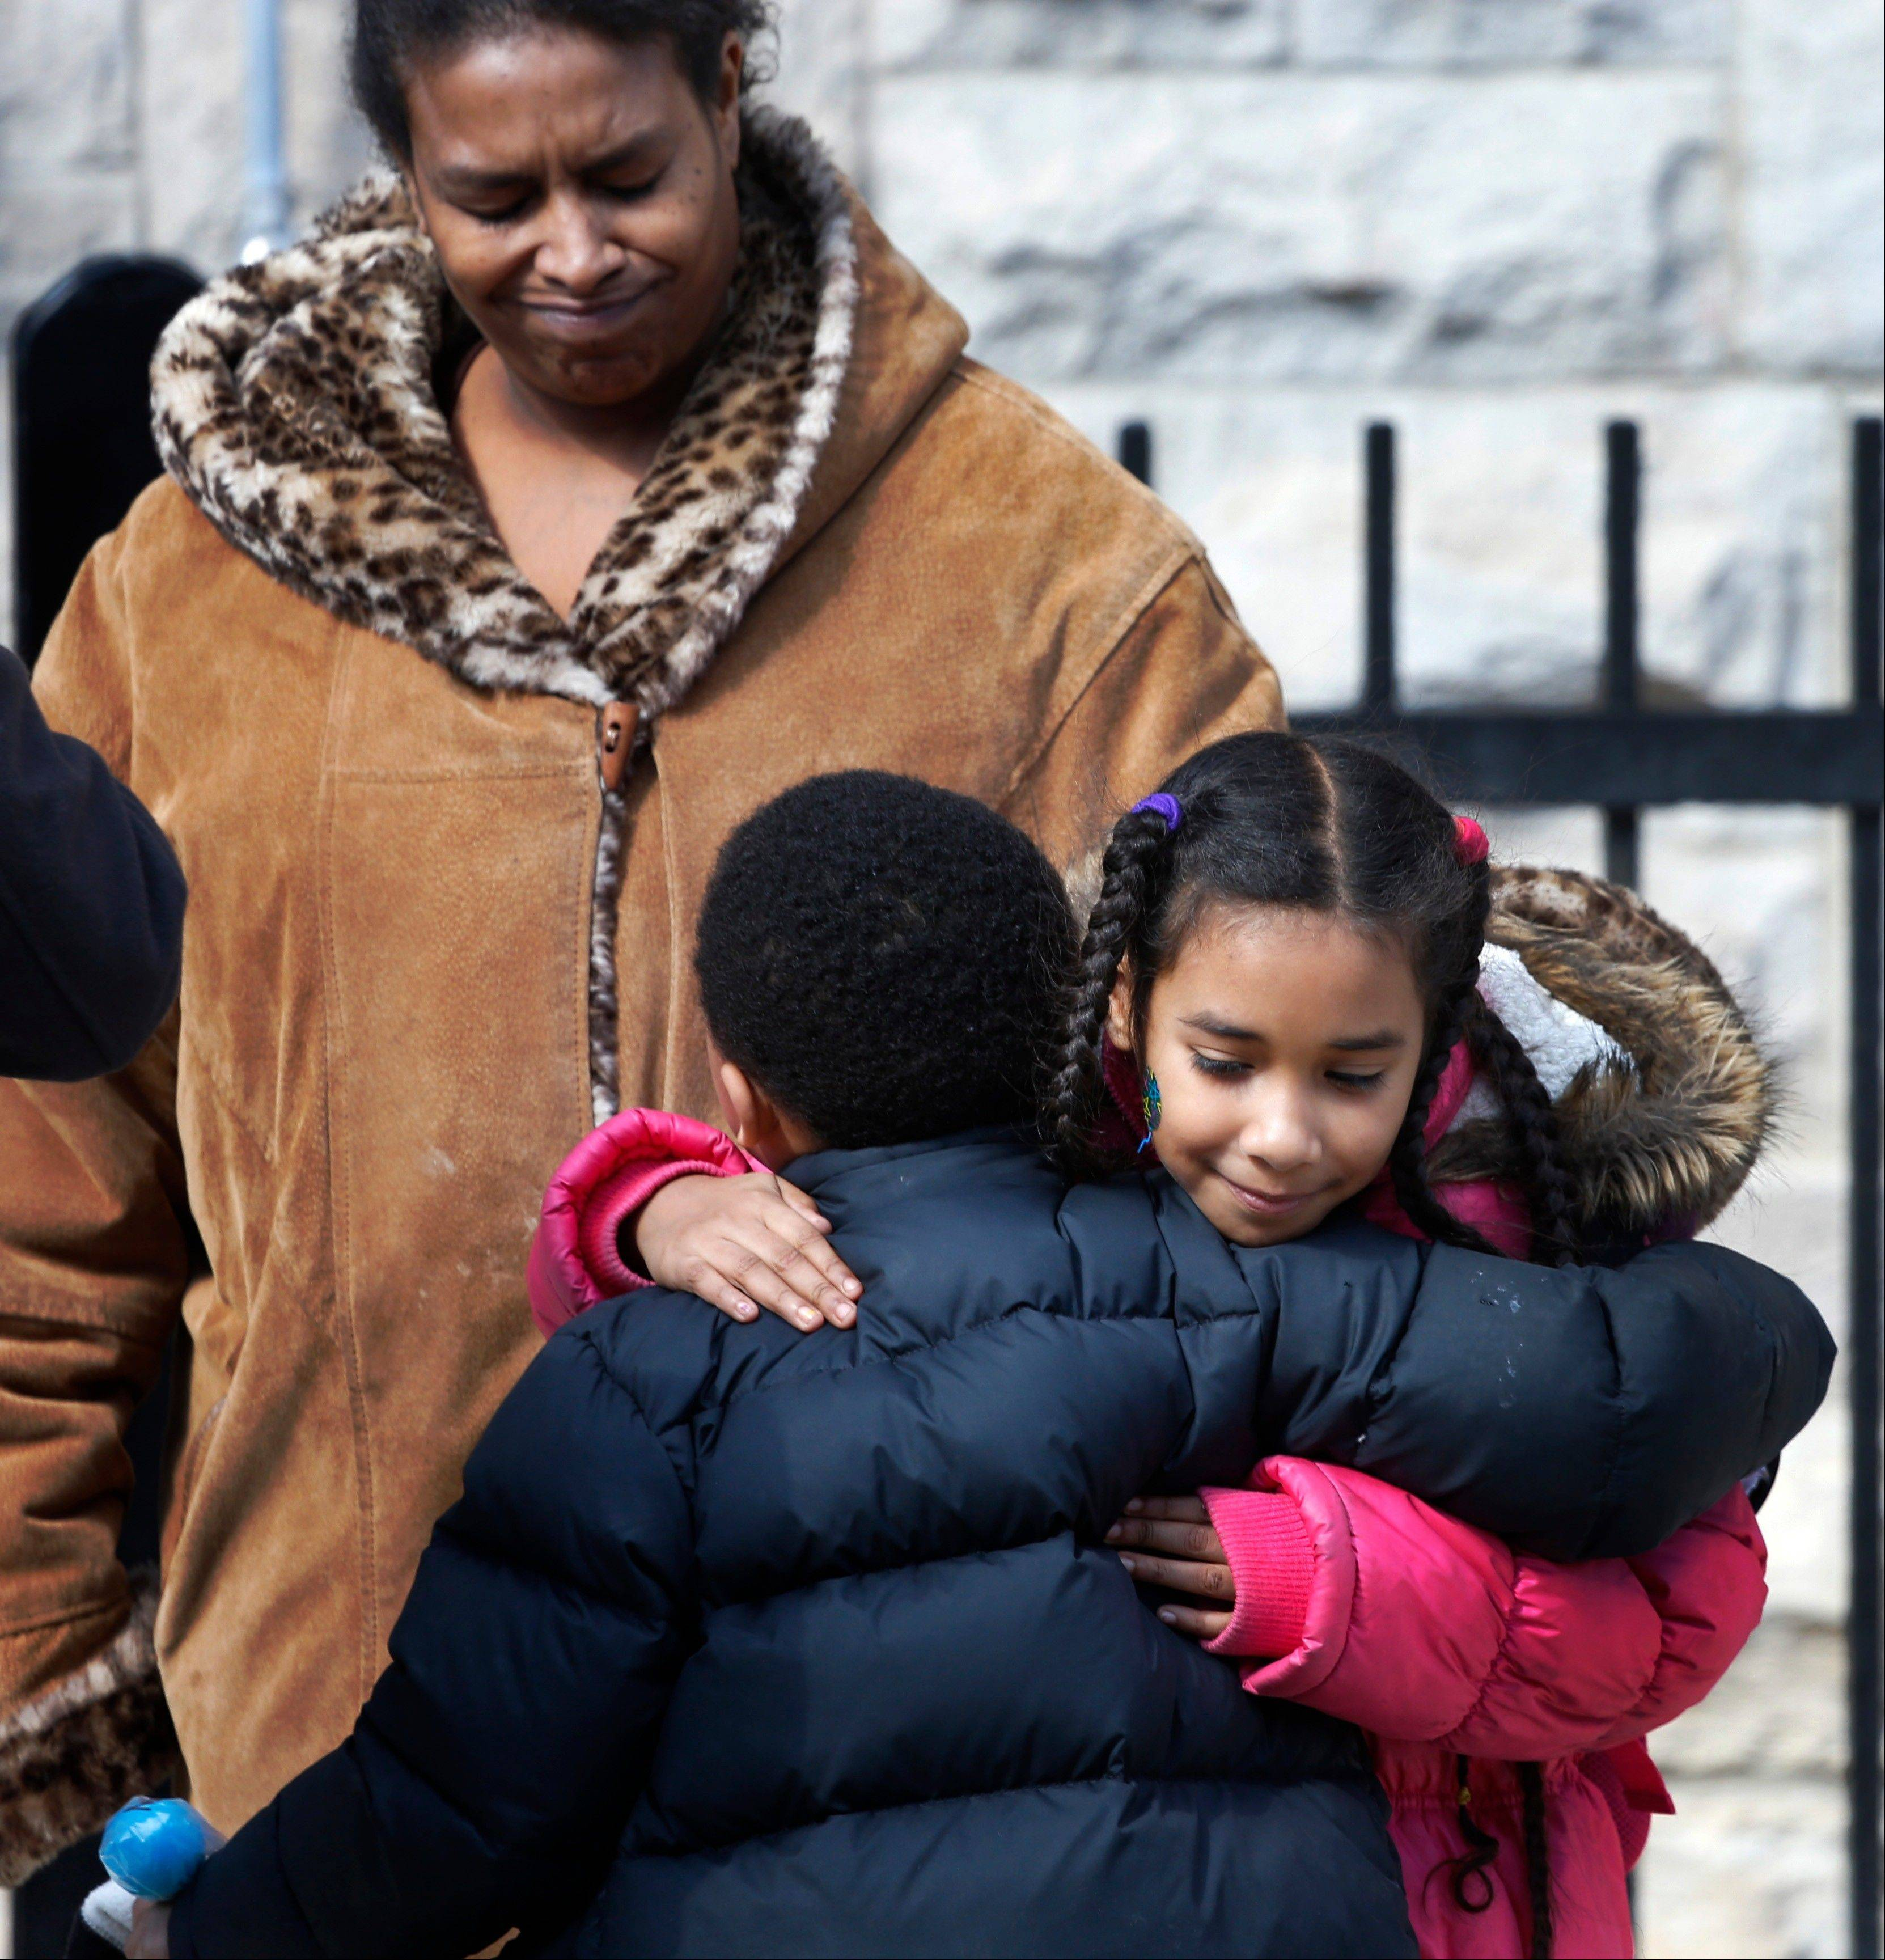 Maria Llanos, left, watches as her daughter Xochilt Fernandez hugs a fellow student Thursday at Lafayette Elementary in Chicago. Chicago Public Schools officials plan to close Lafayette and 53 other schools.